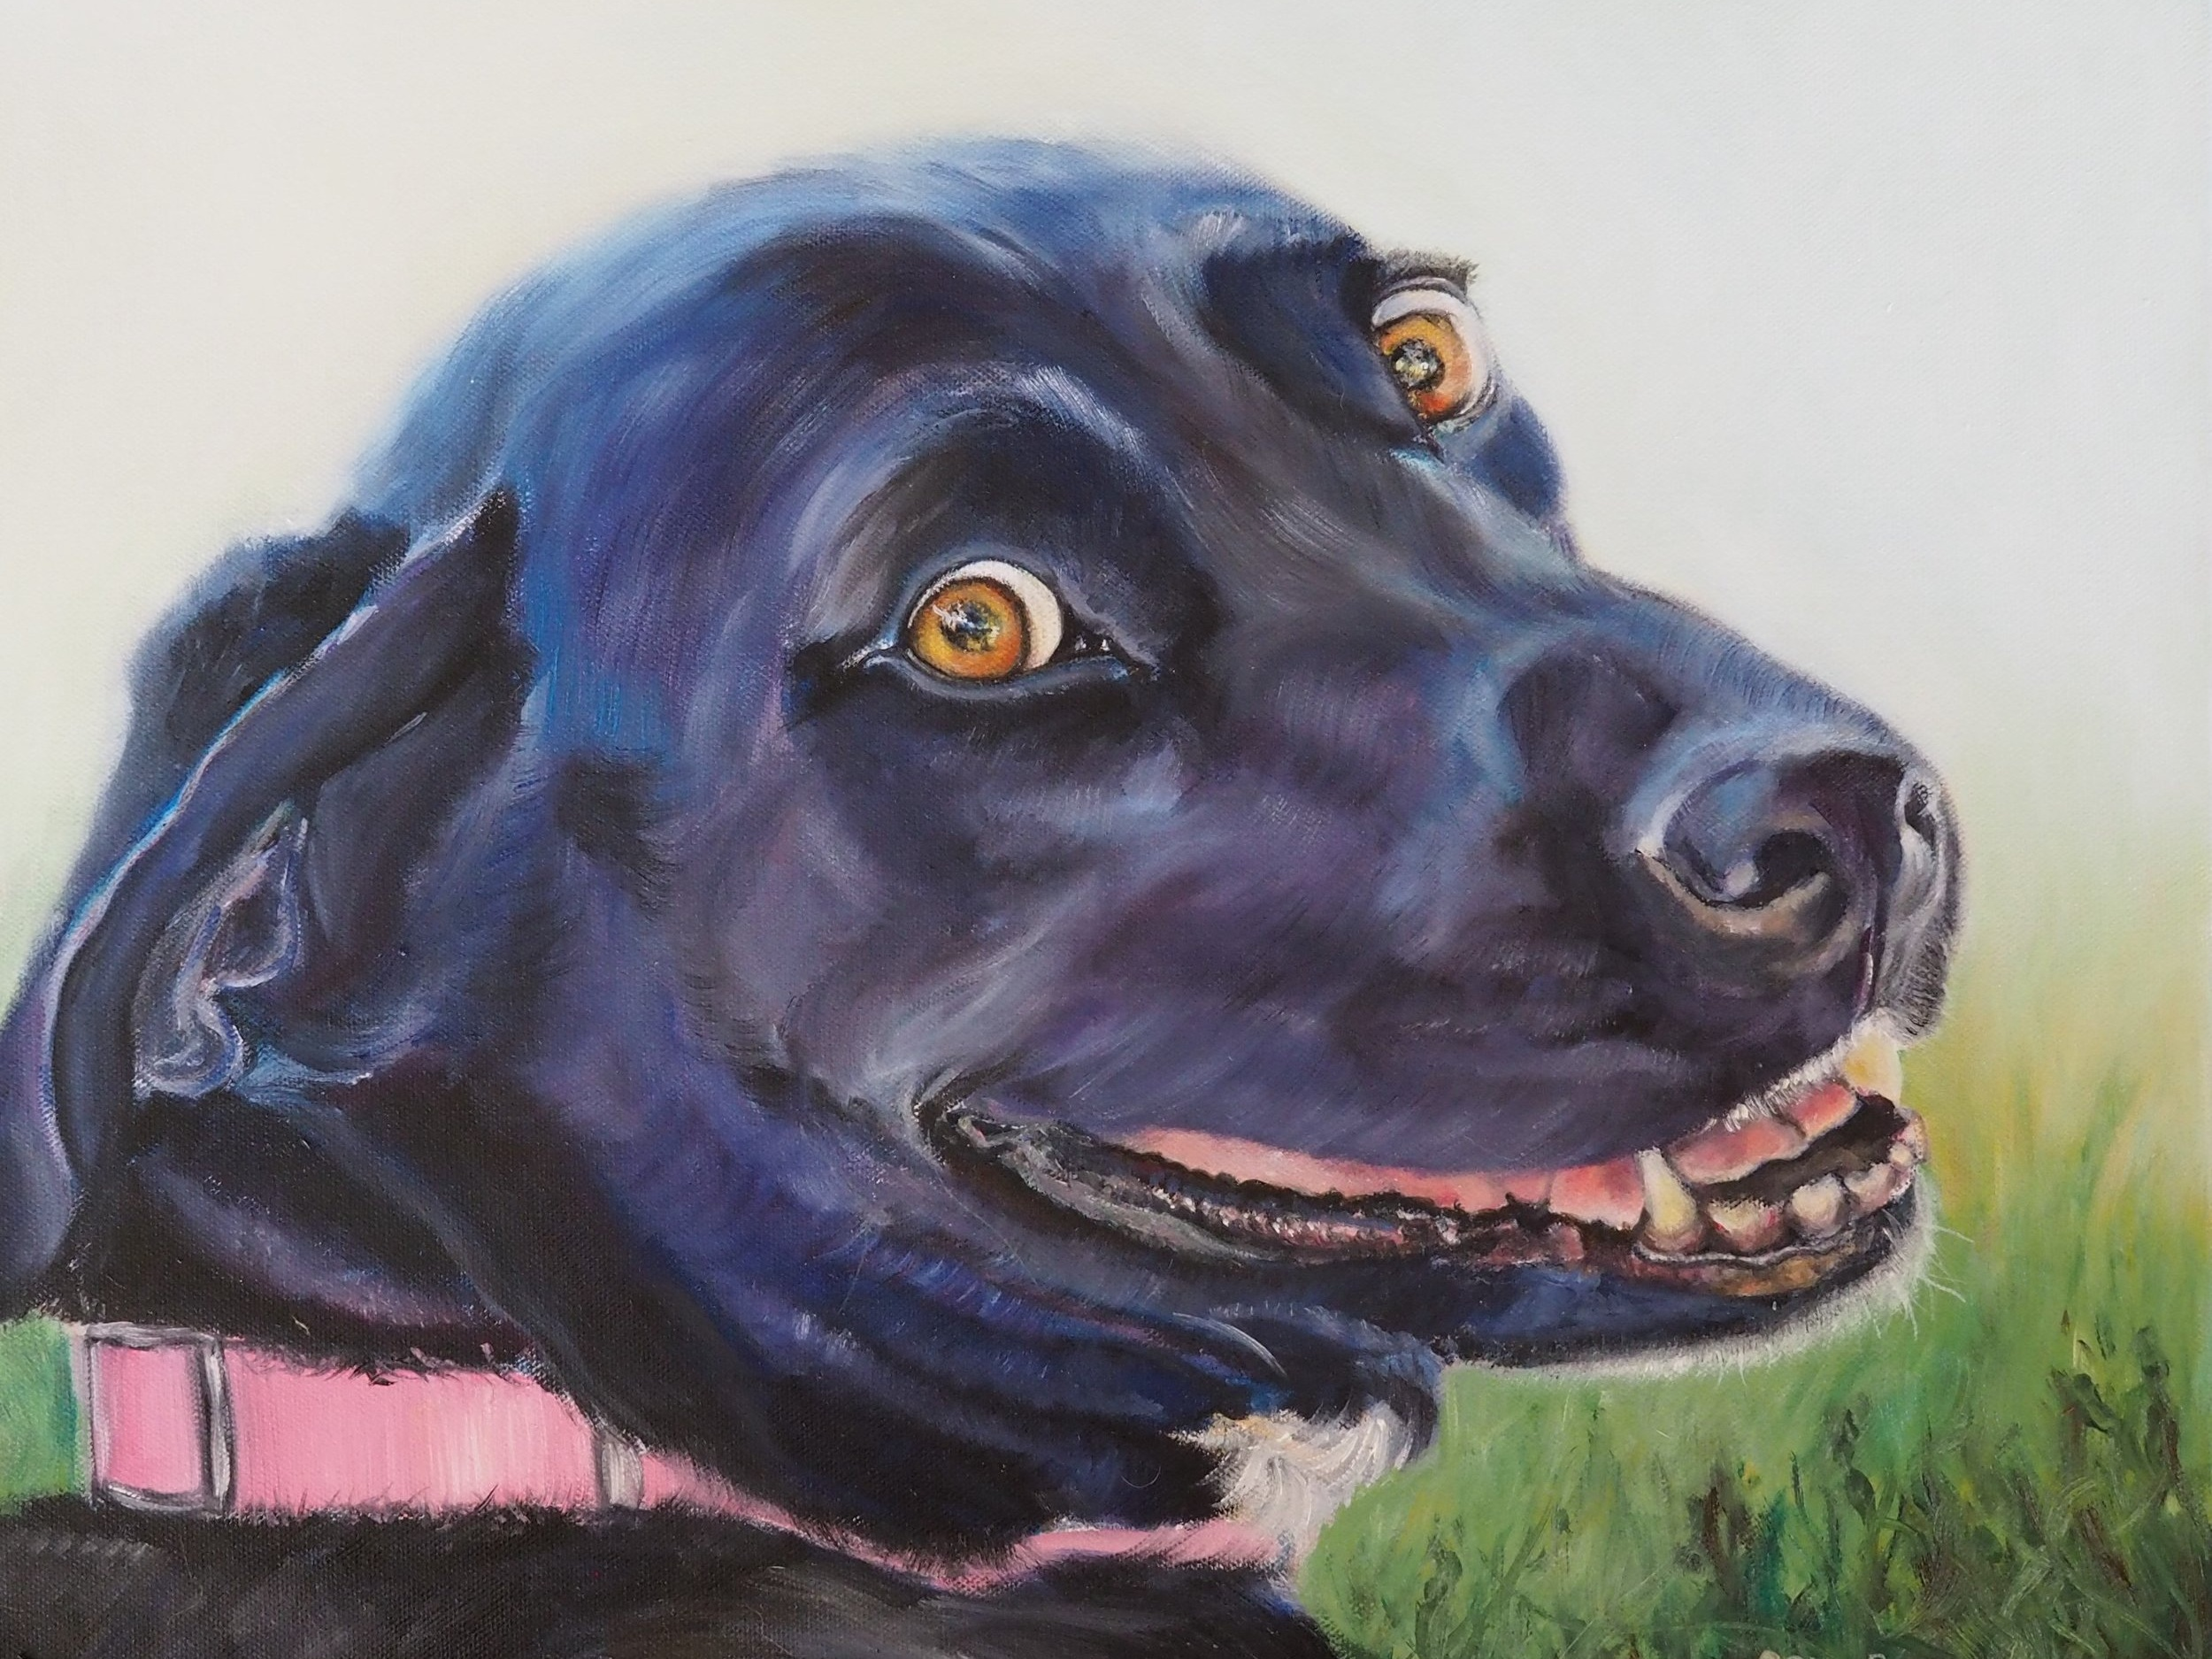 CUSTOM DOG PORTRAIT OF BLACK KELPIE SMILING HAND PAINTED  IN AUSTRALIA  FROM A PHOTOGRAPH BY OPAL PASTRO ART